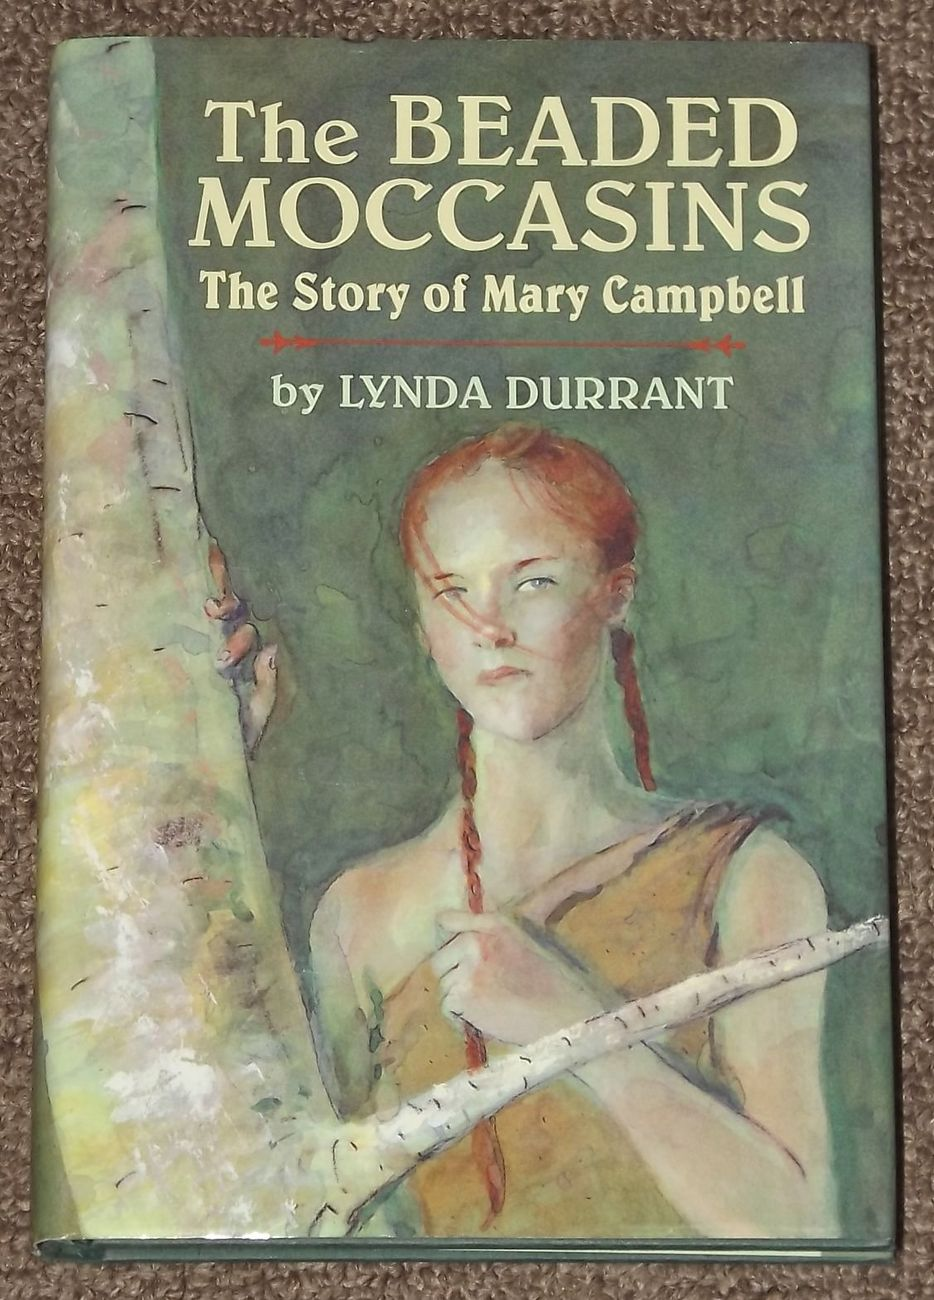 The Beaded Moccasins The Story of Mary Campbell by Lynda Durrant